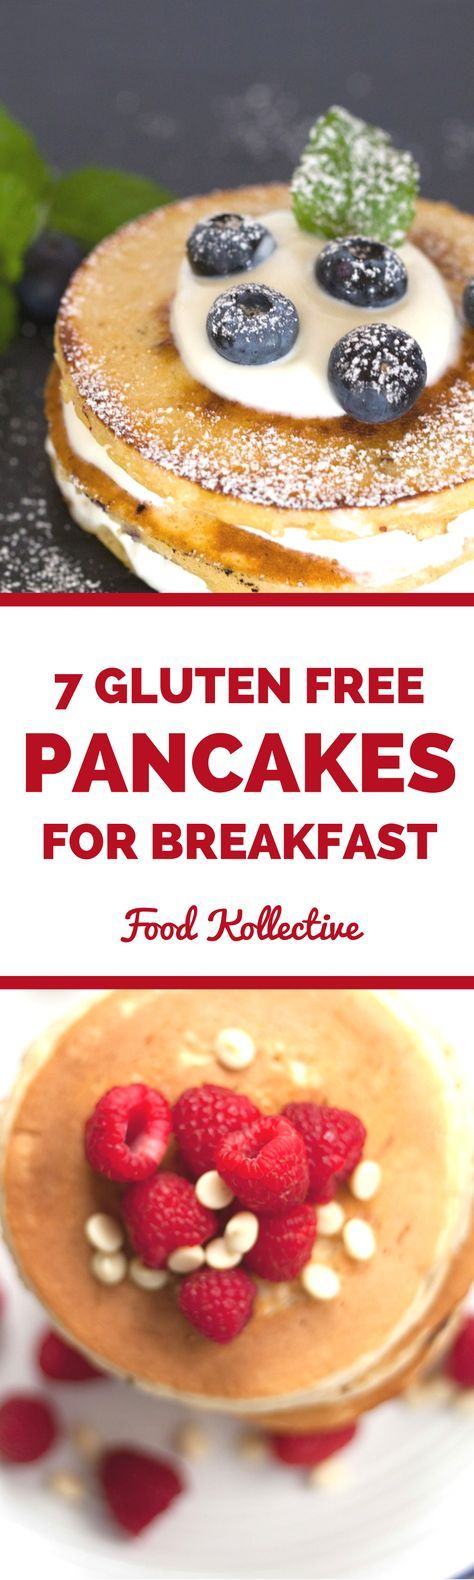 I was searching for gluten free pancakes and these look really tasty! There are recipes for gluten free pumpkin pancakes, gluten free chocolate chip pancakes, gluten free blueberry pancakes, and more! These would be great for a sweet breakfast or brunch. Collected on FoodKollective.com